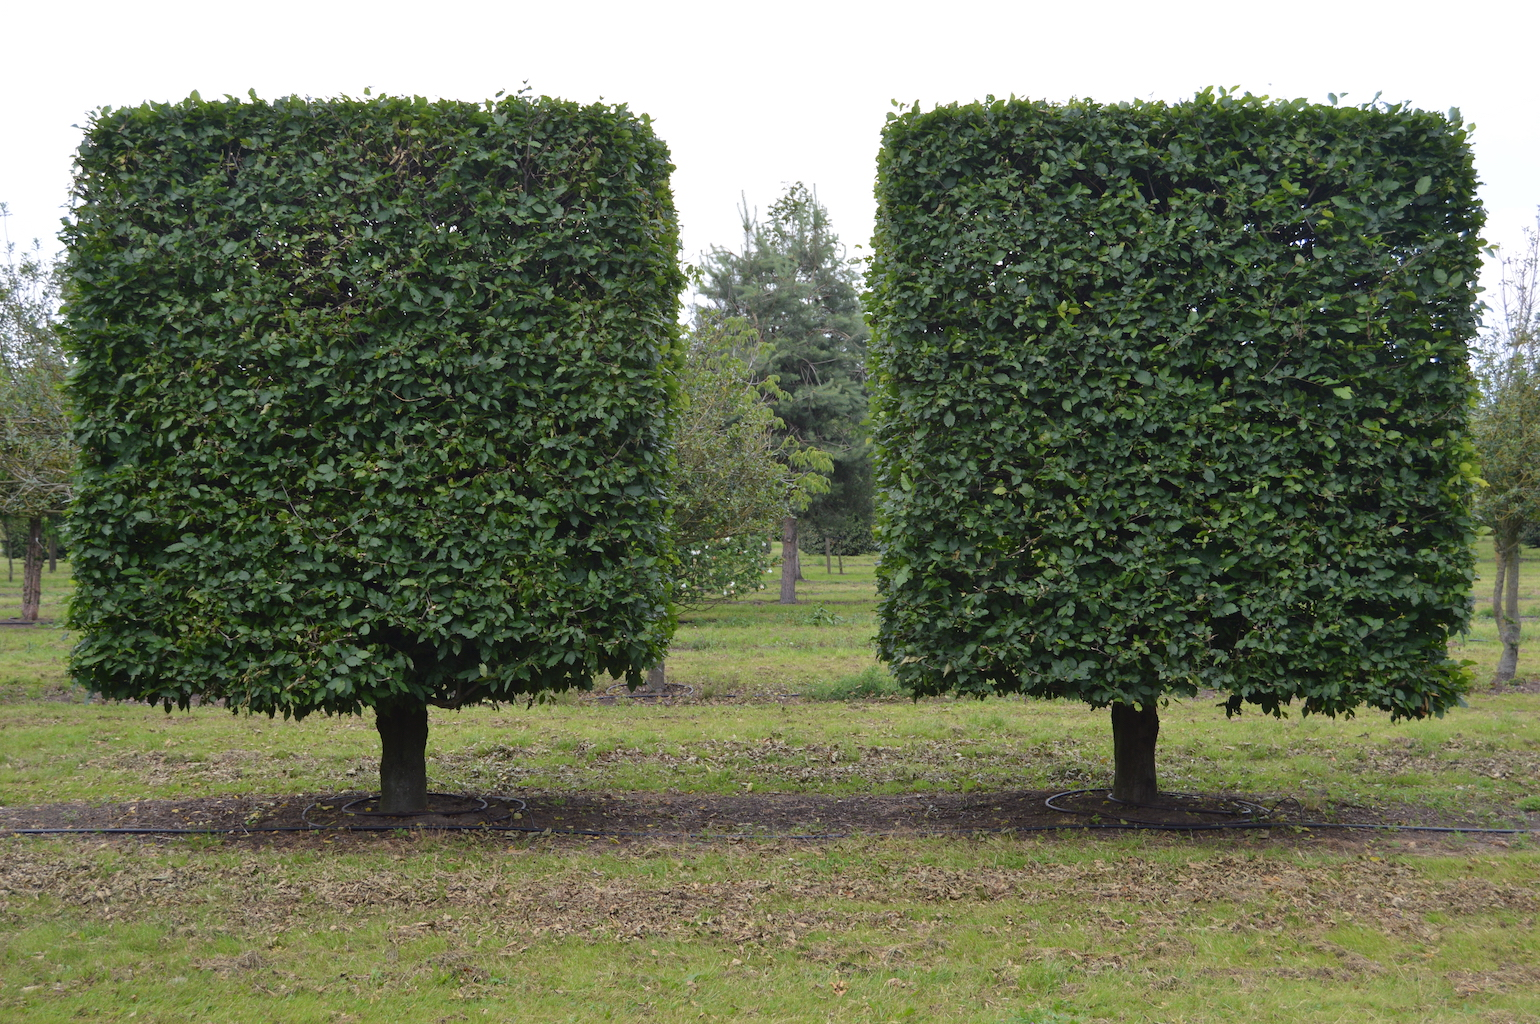 Carpinus betulus (Hornbeam) topiary blocks with low clear stems